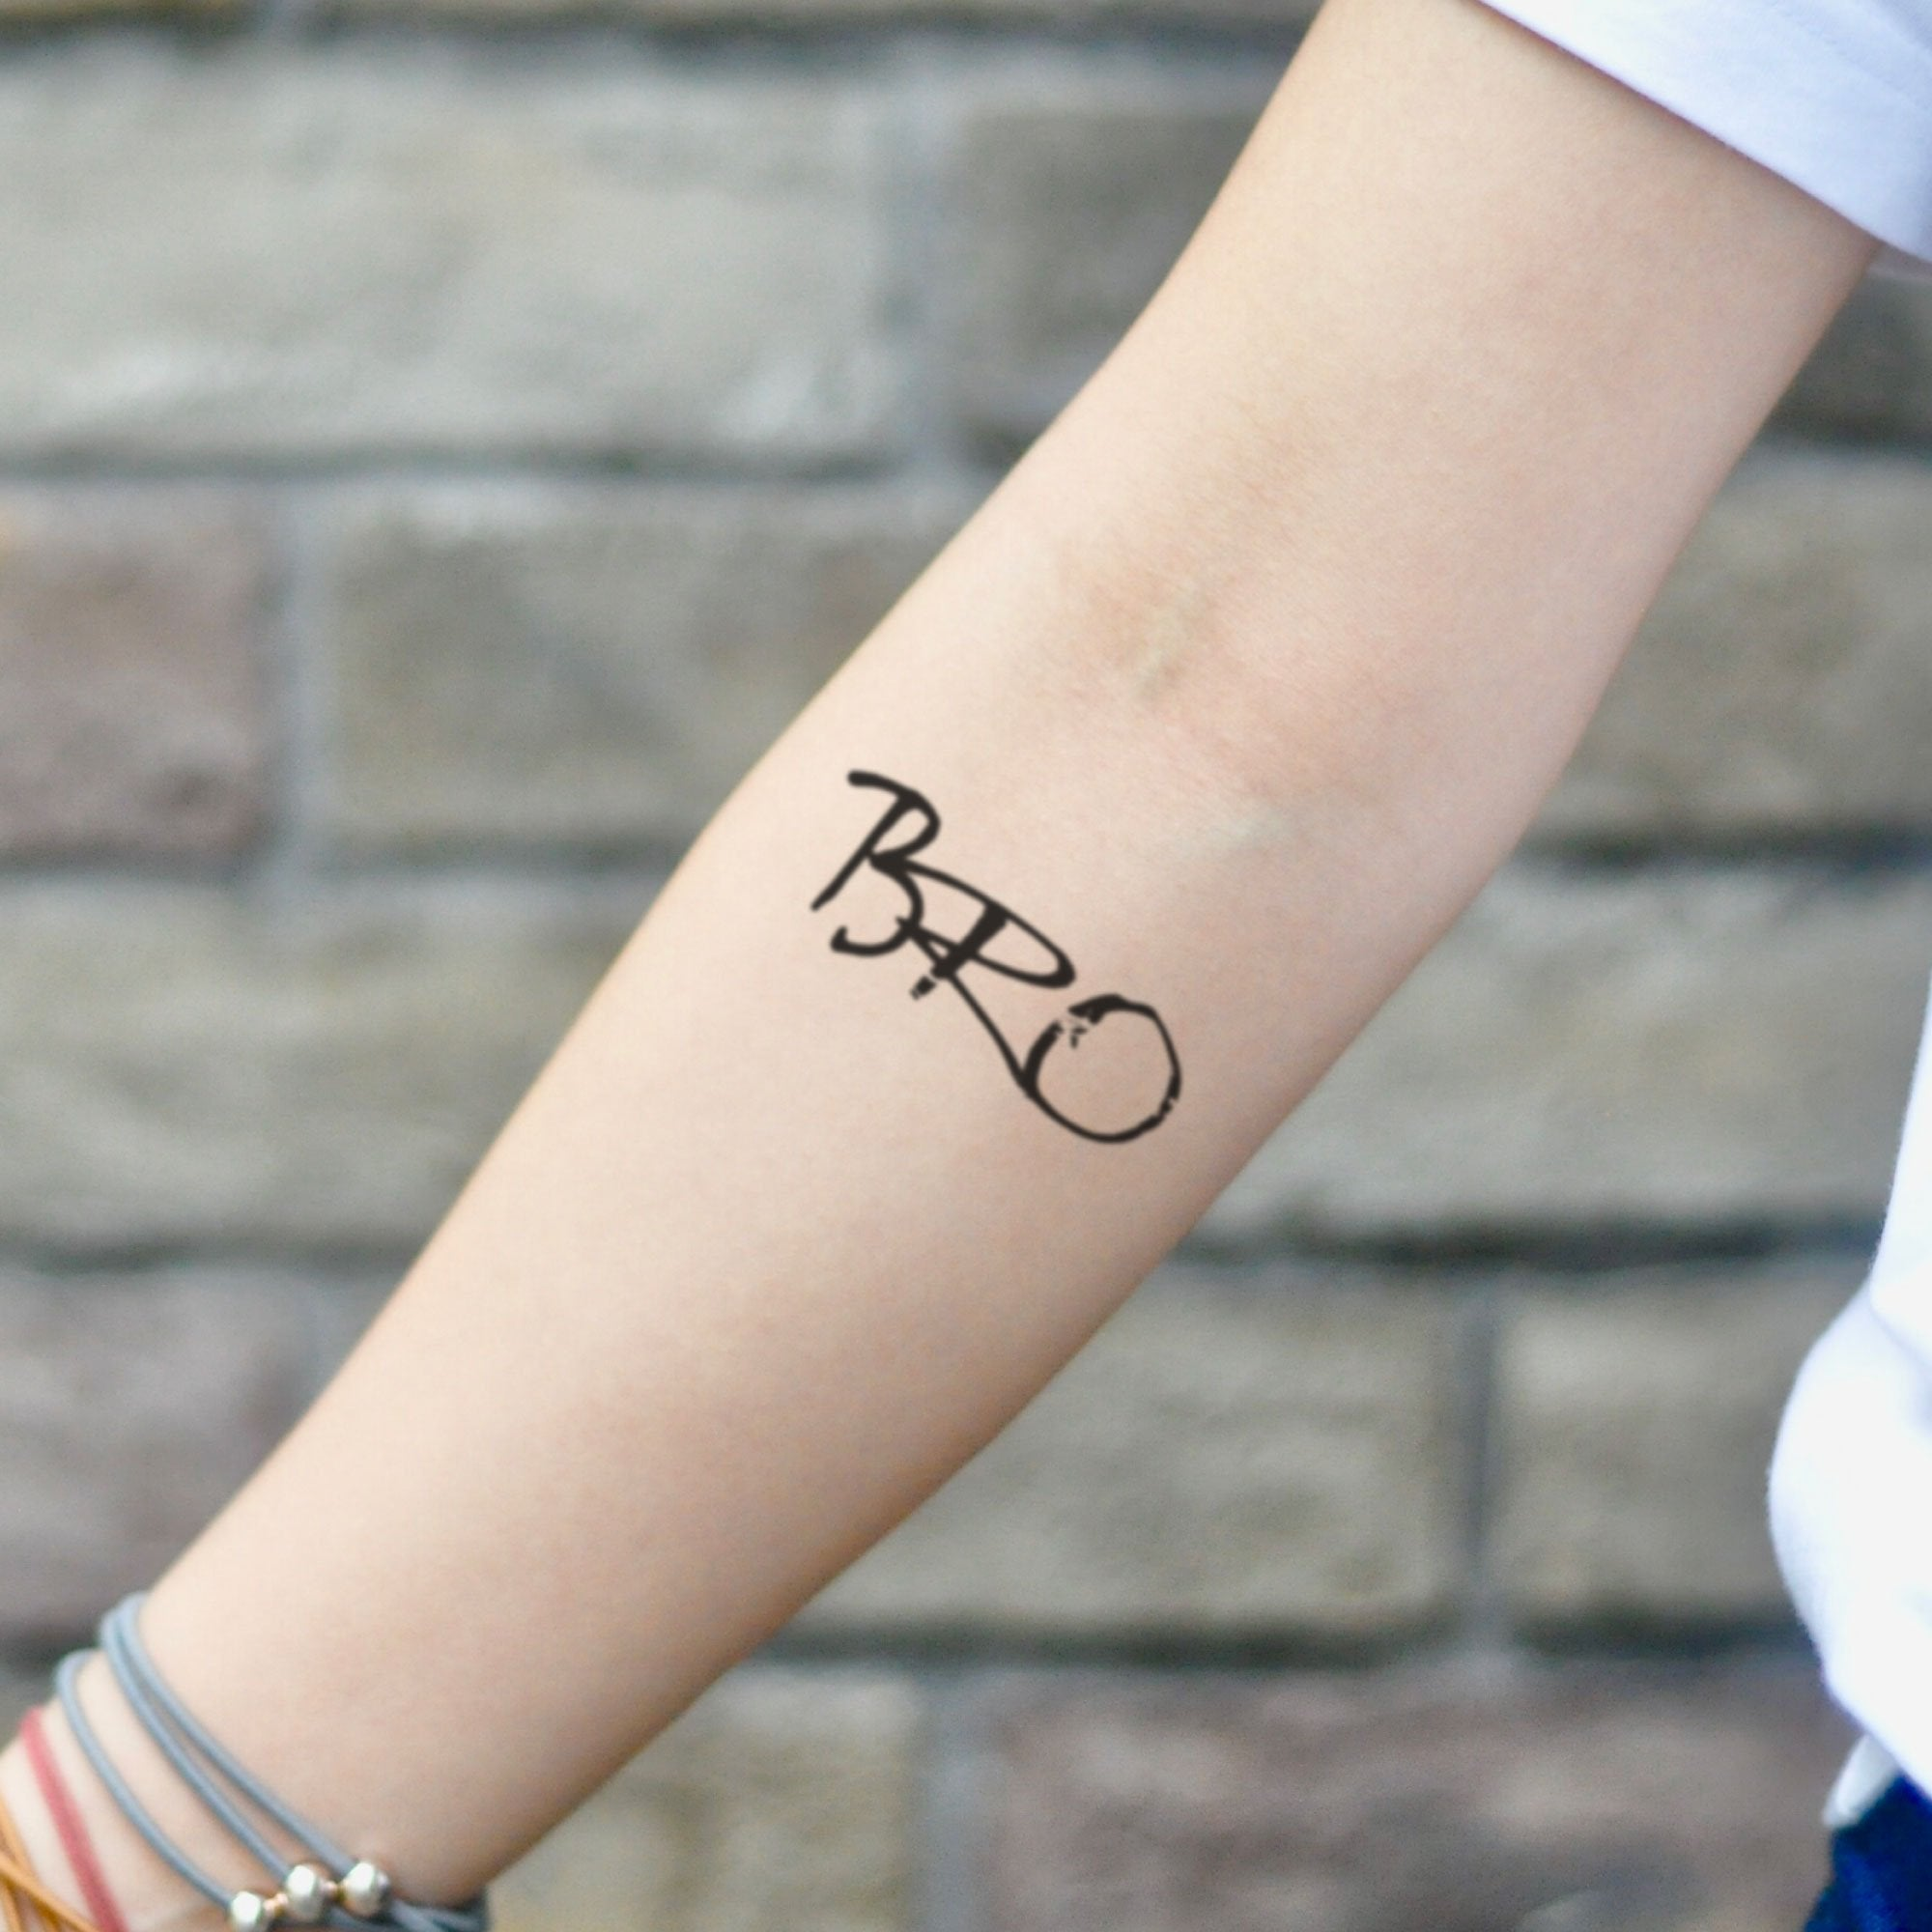 Bro Brothers Forever Temporary Tattoo Sticker Ohmytat